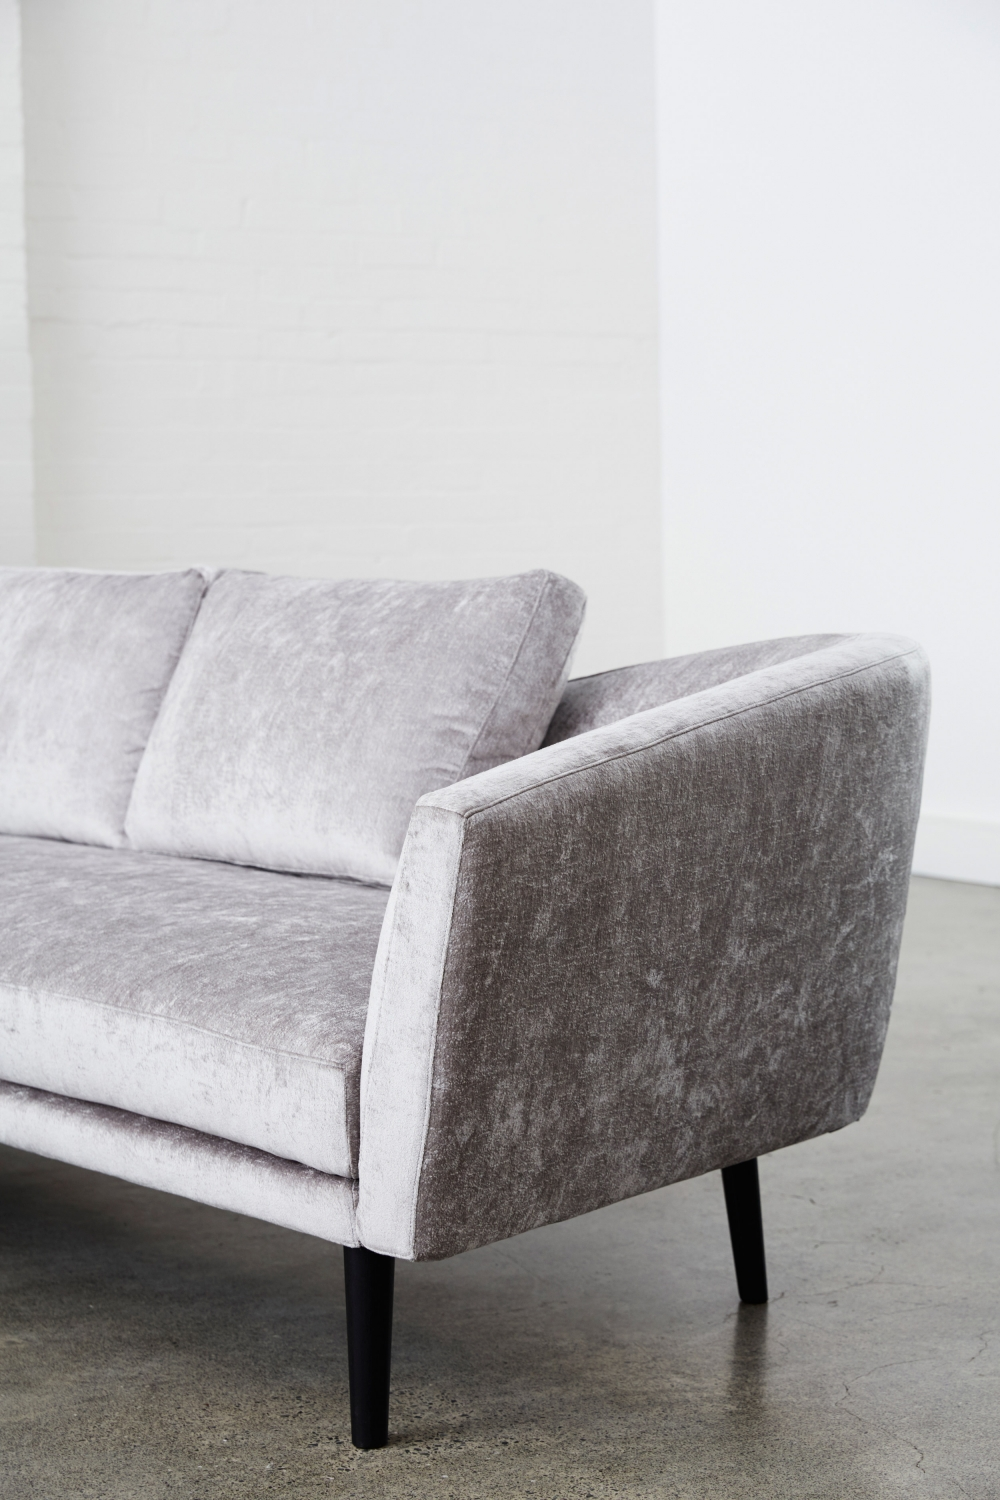 Harper and Harley | Lifestyle | Home | Interiors | King Living| Couch | Sofa